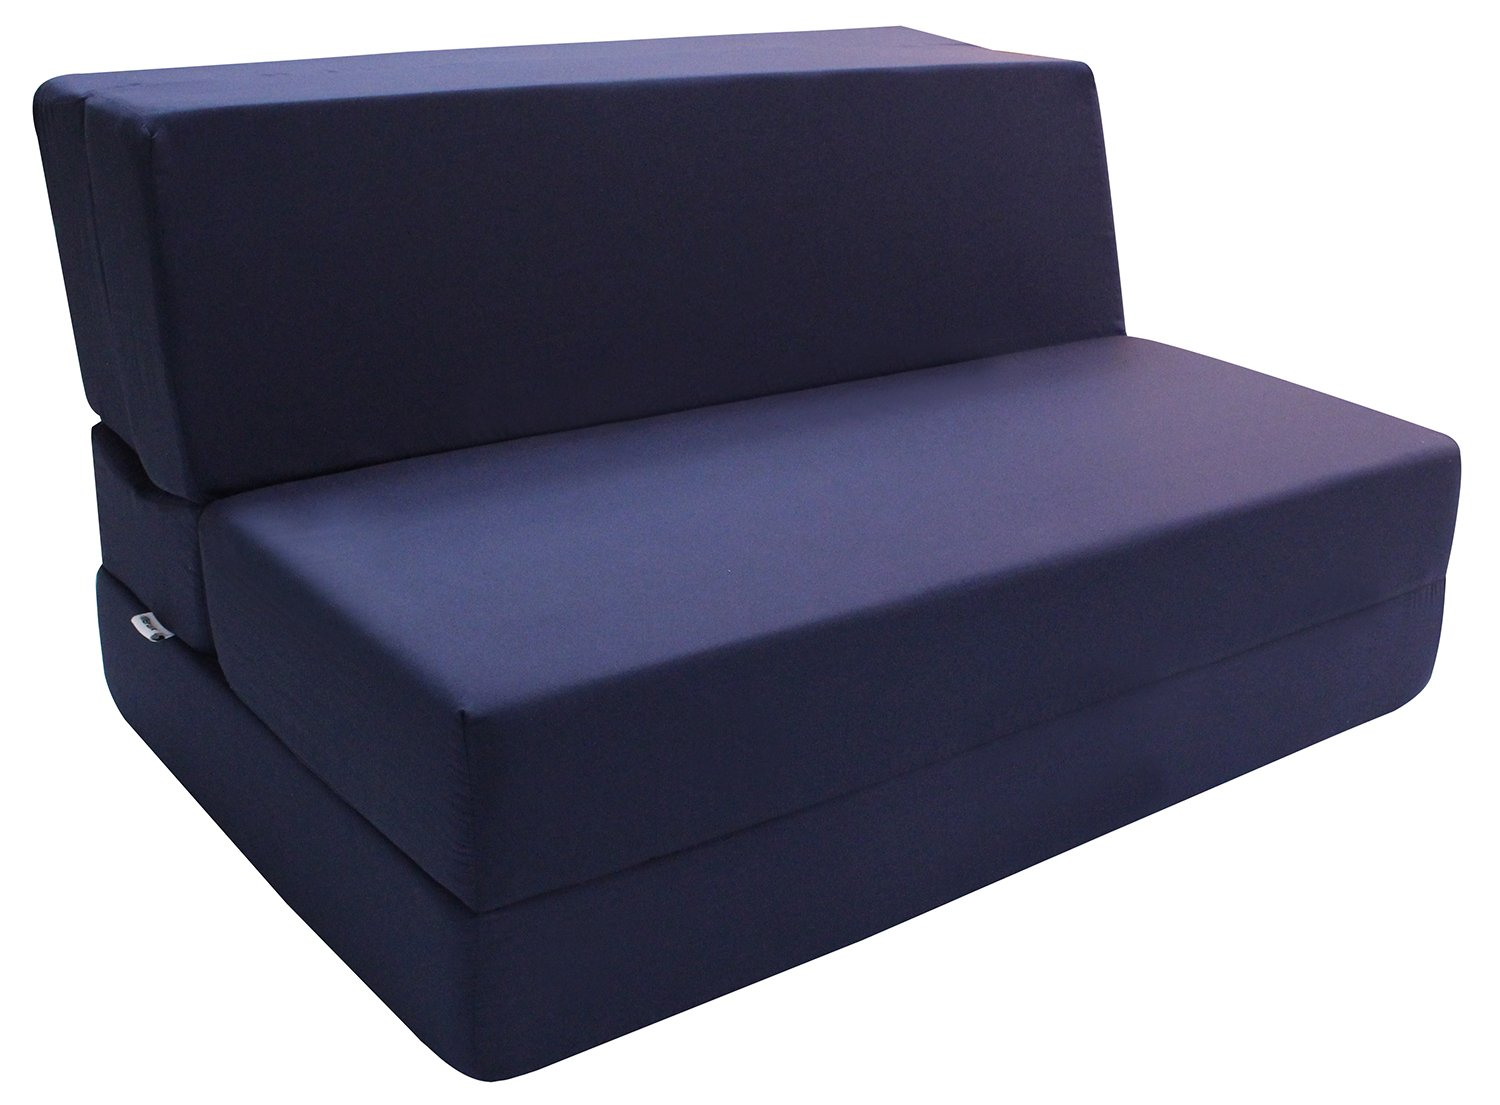 Merax Convertible 5-Folding Foam Sleeping Mattress Sofa Bed and Floor Mat, 74inx39inx5in, Navy Blue